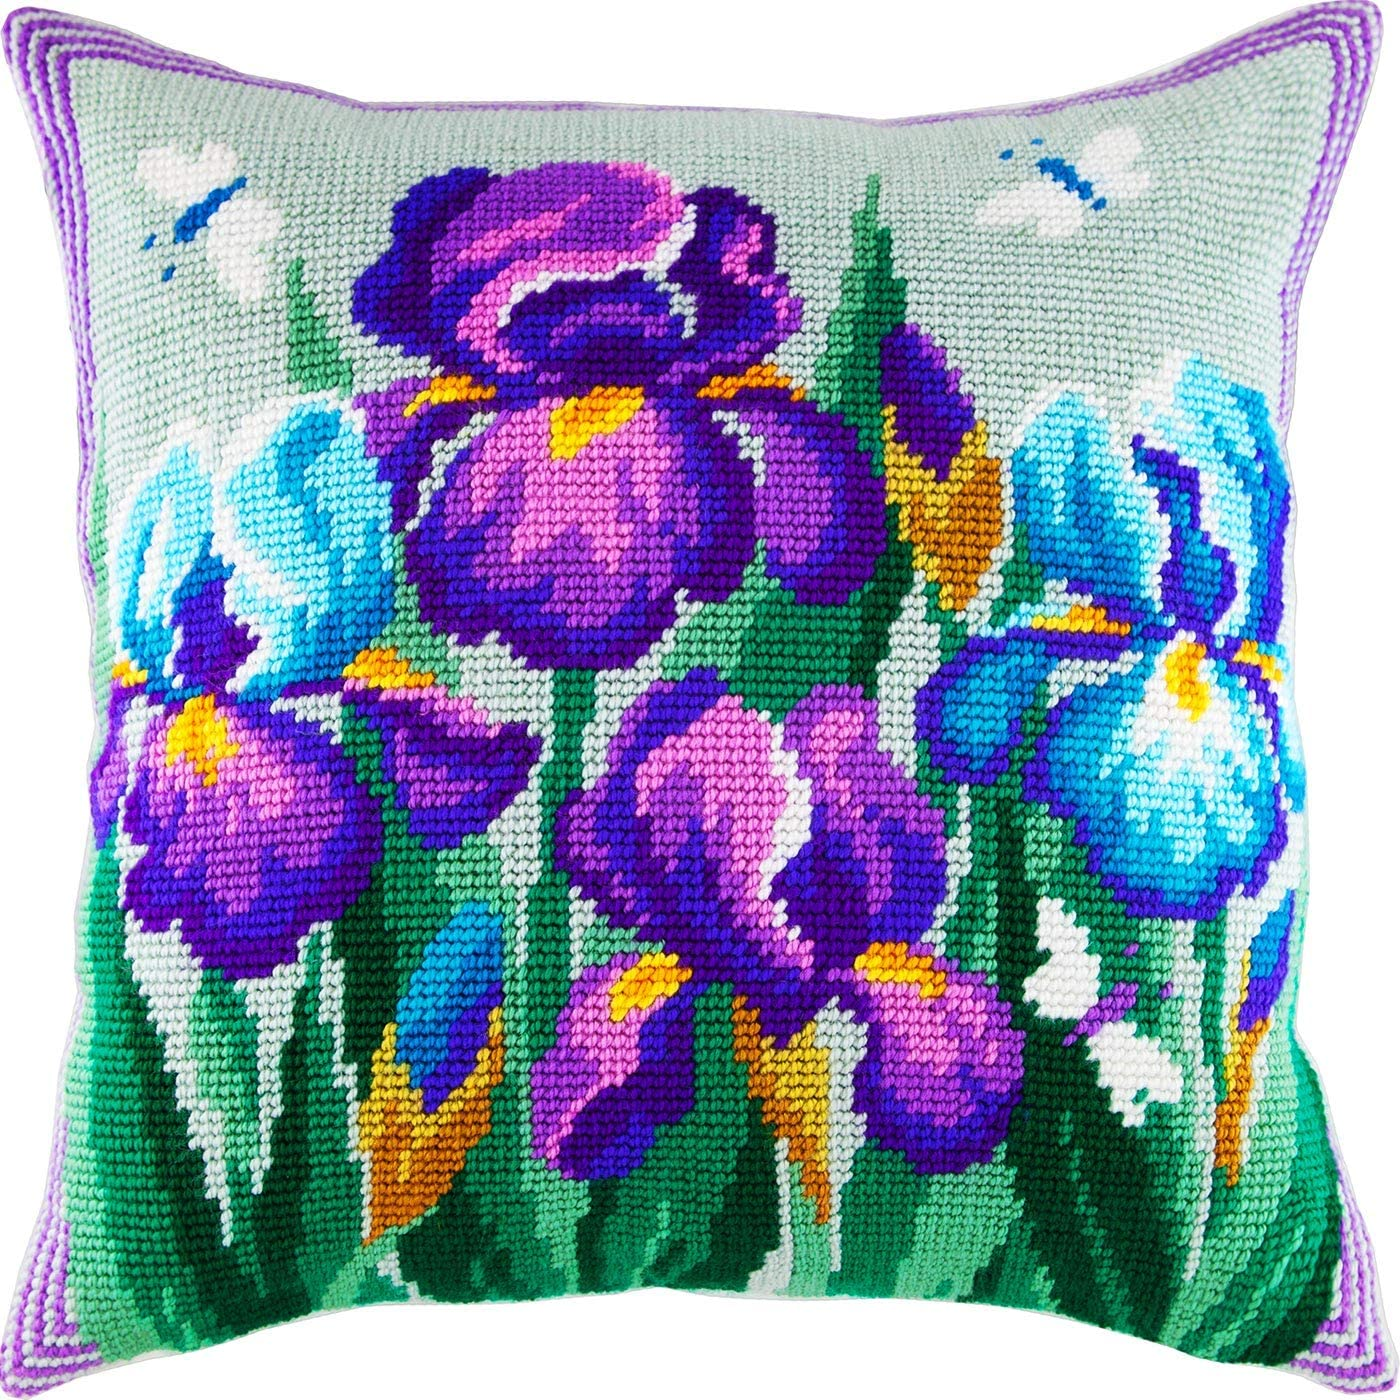 European Quality Throw Pillow 16/×16 Inches Cushion Back Included Printed Tapestry Canvas White Lilies Needlepoint Kit